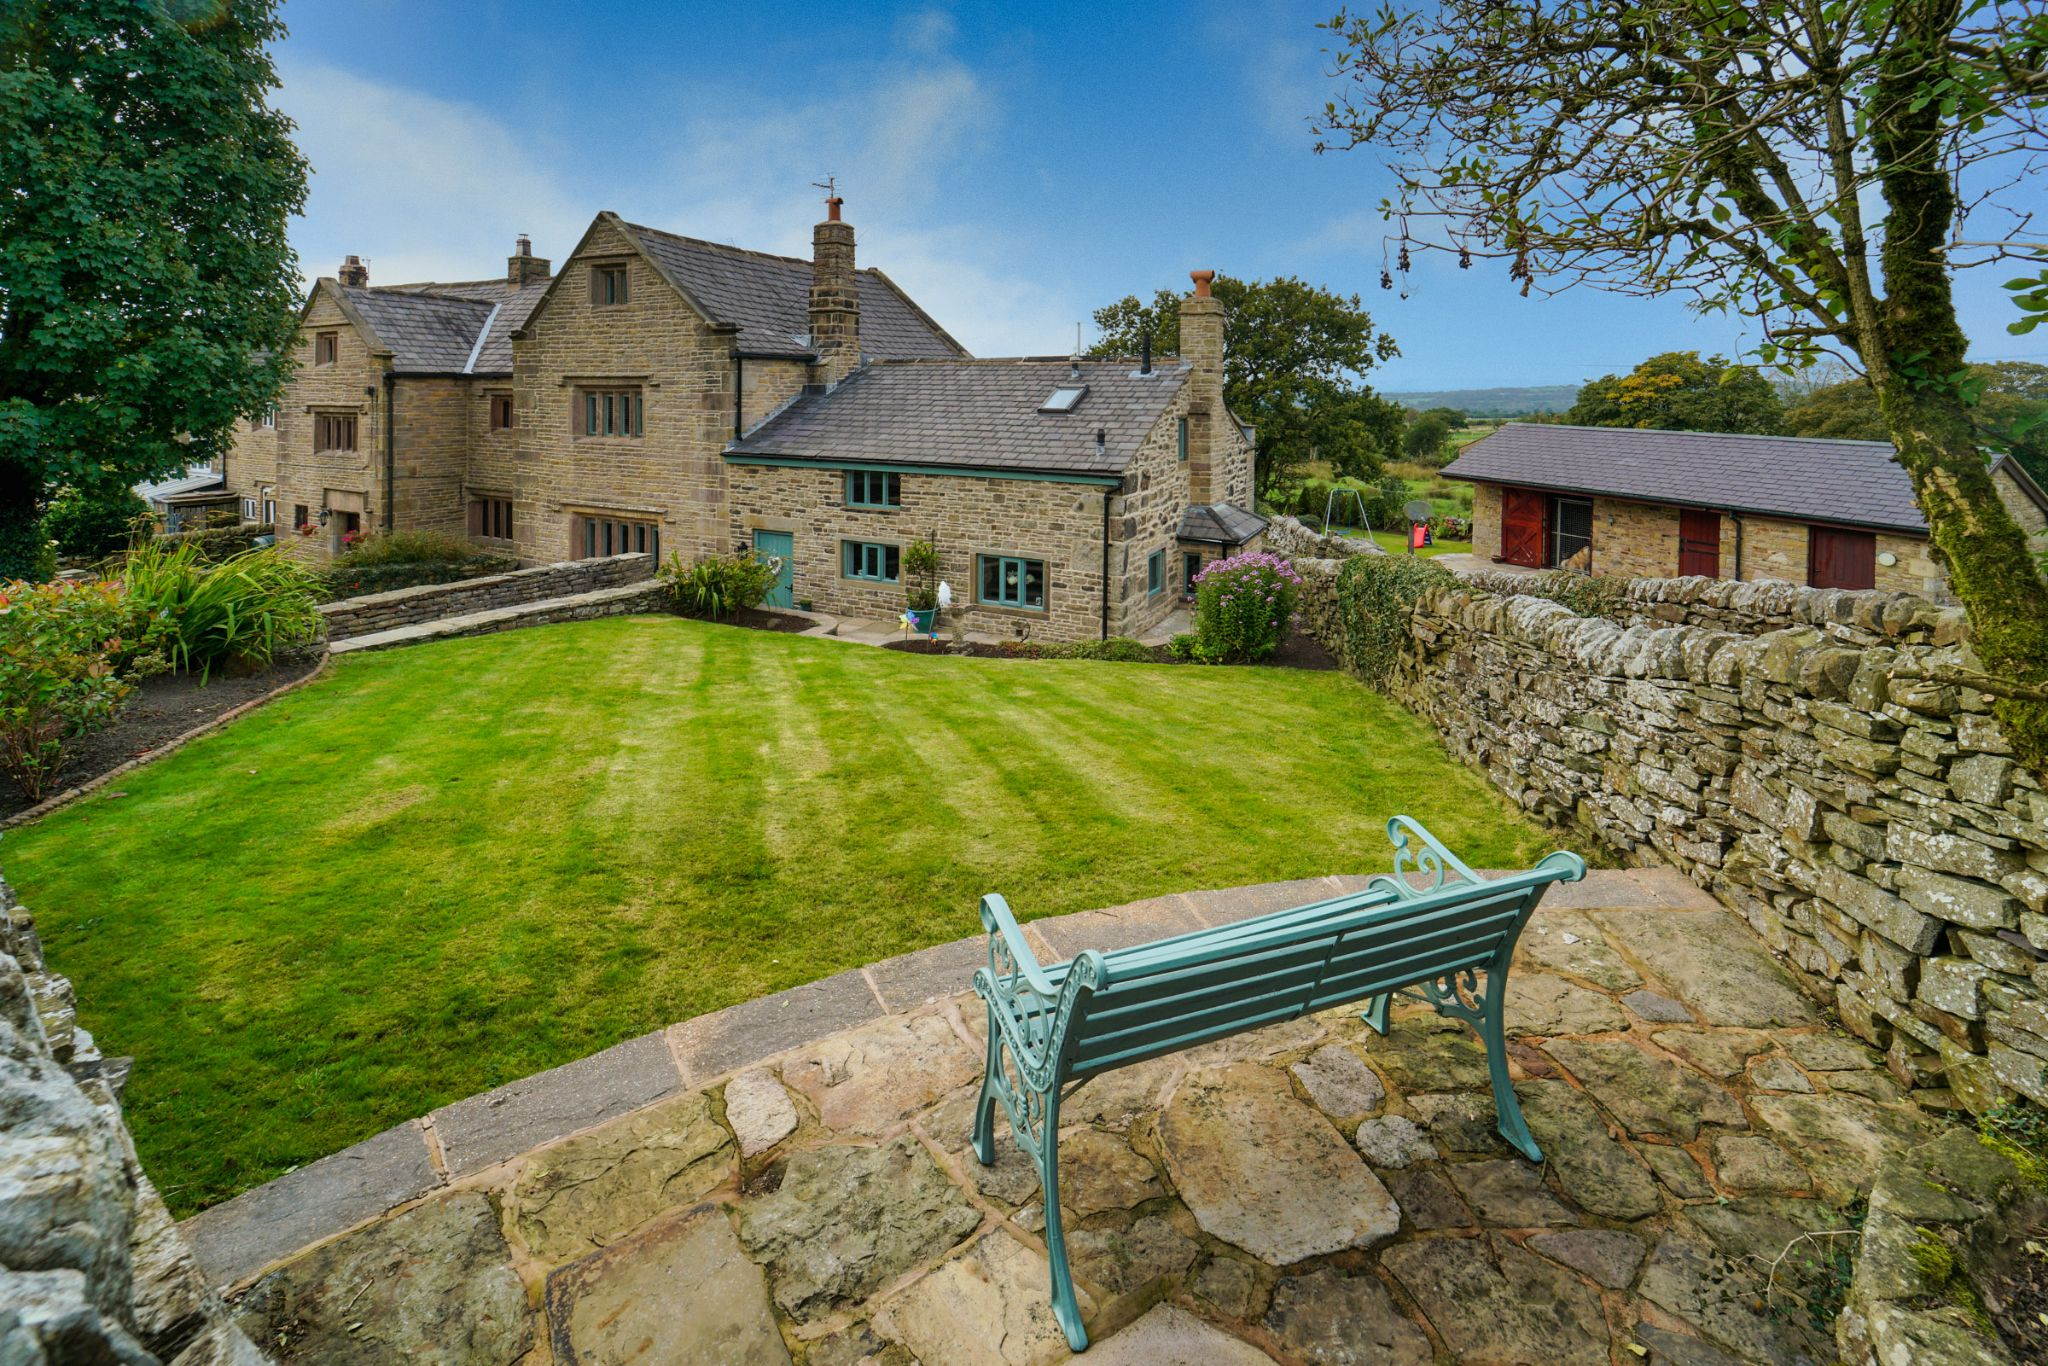 4 bedroom undefined house For Sale in Darwen - Photograph 5